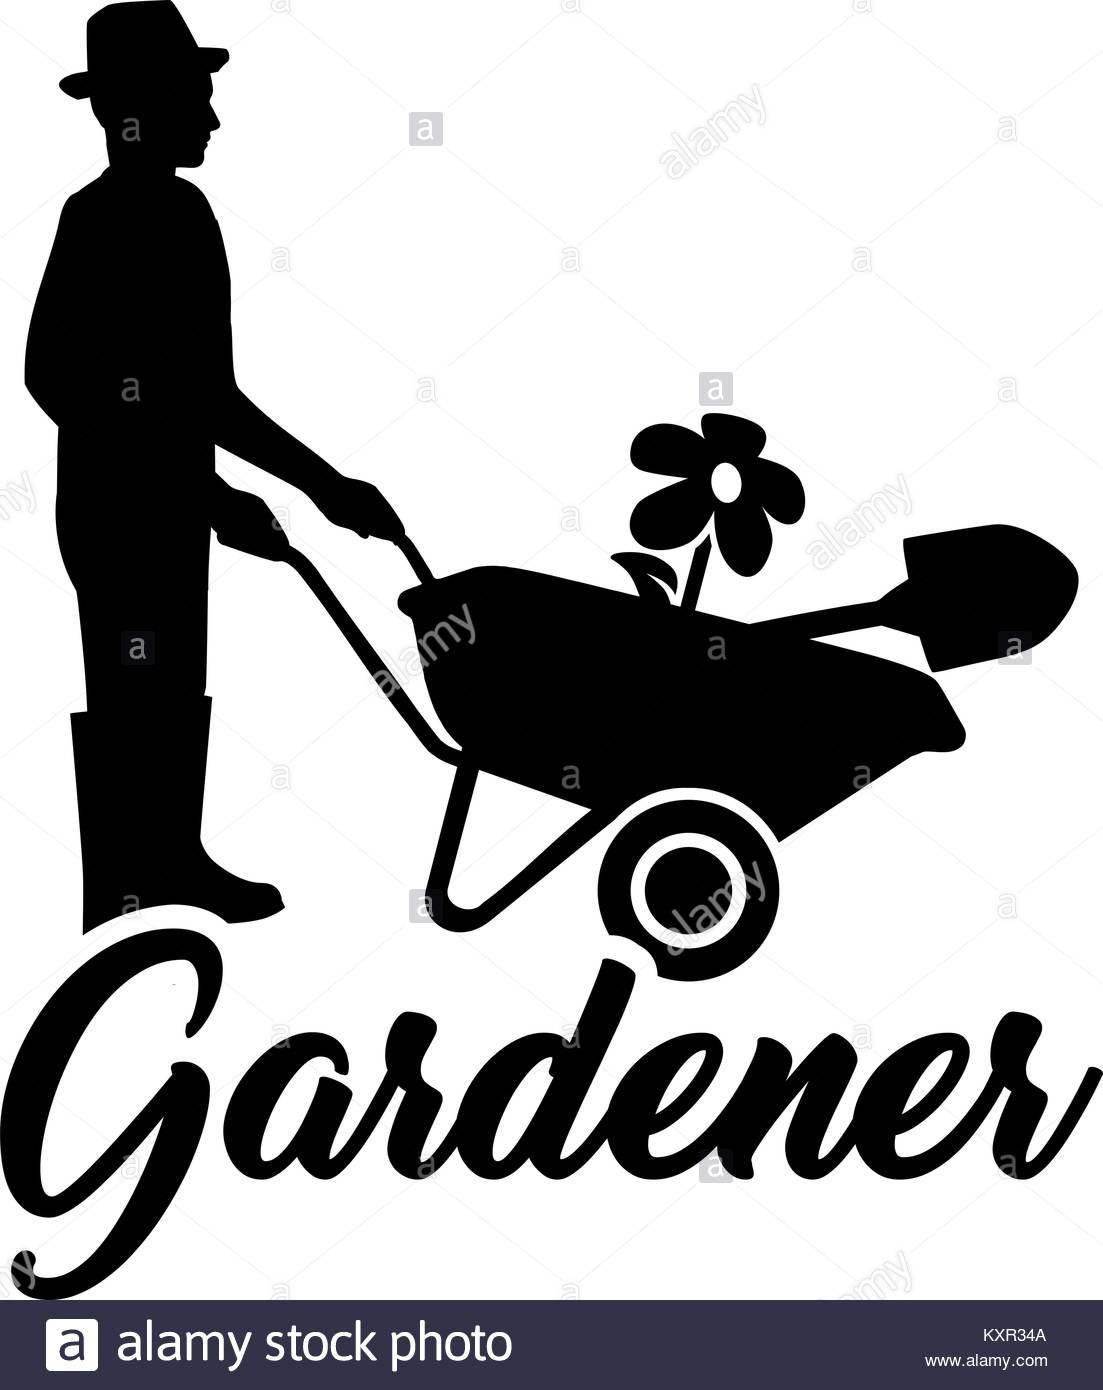 1103x1390 Silhouette Of A Gardener With Job Title And Wheelbarrow Stock